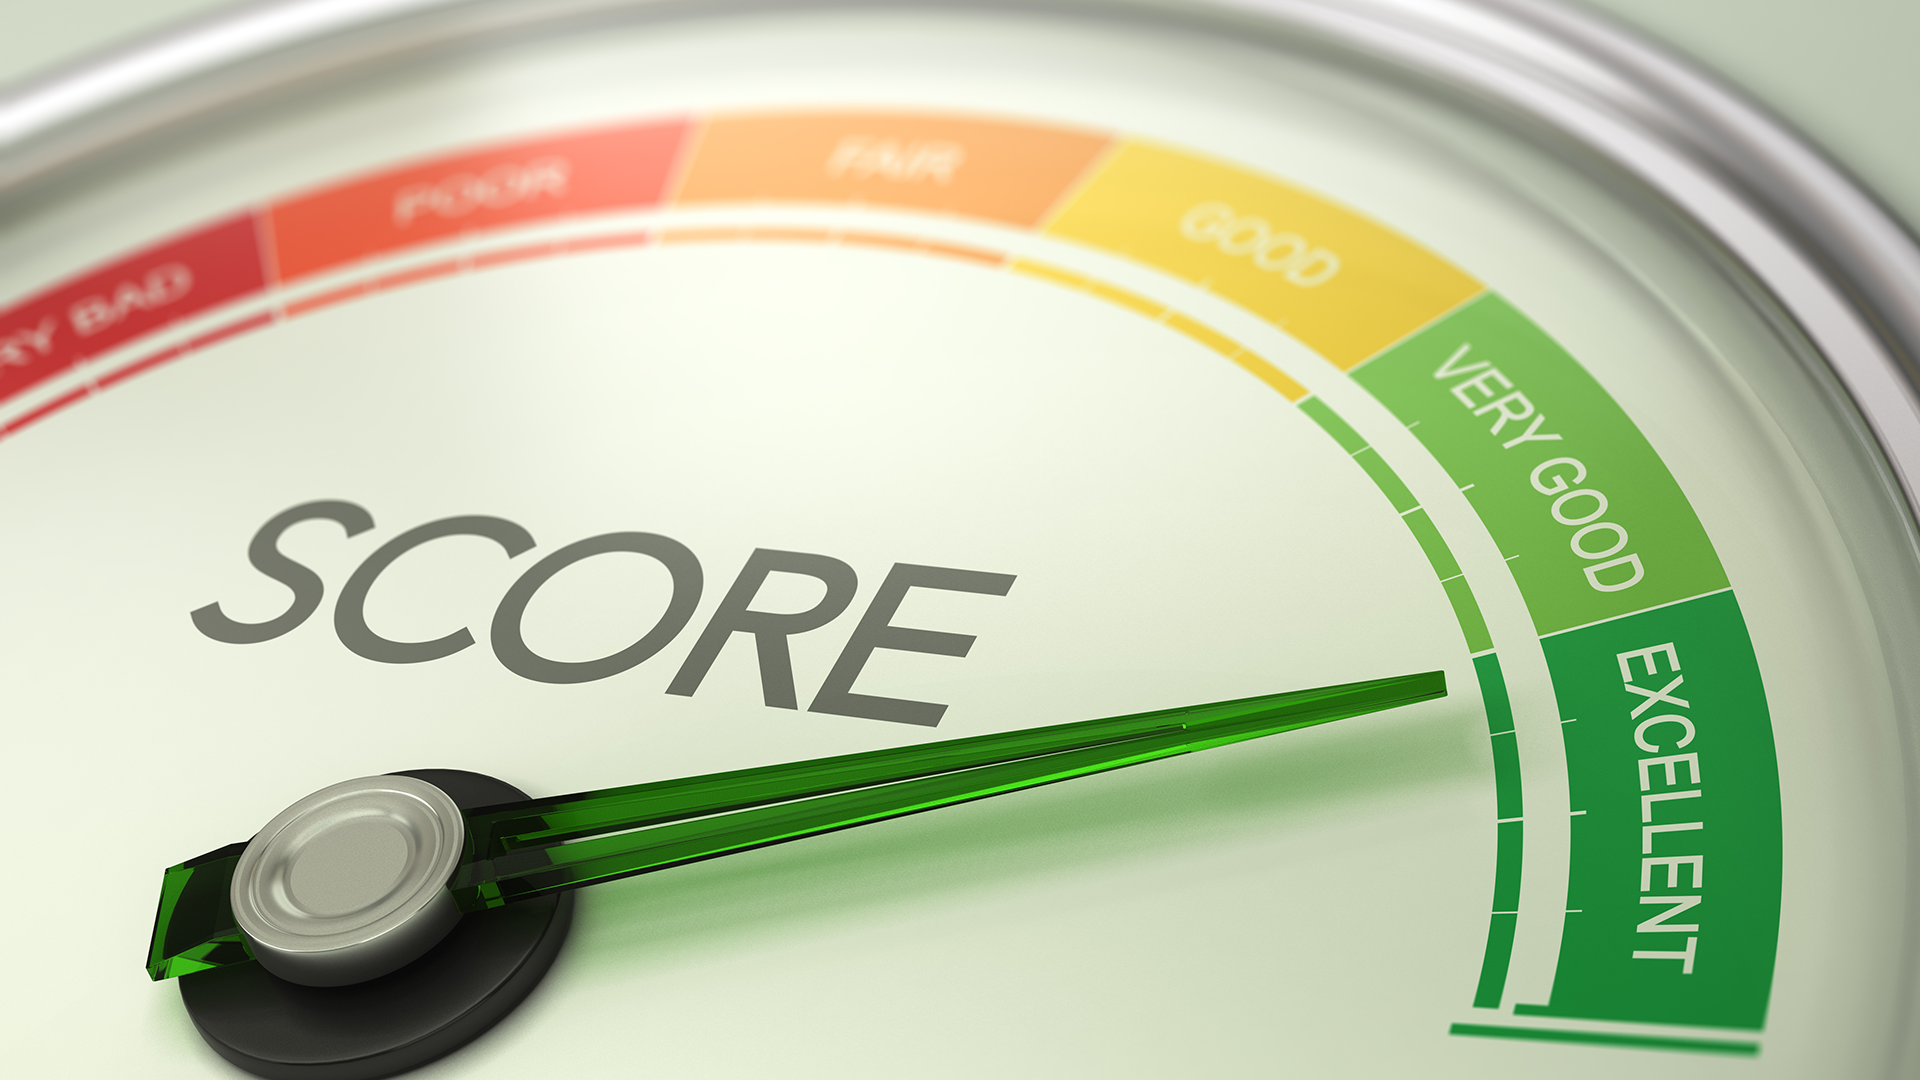 How We Increased Our CREDIT SCORE from 400s to 800+ Without A Credit Specialist